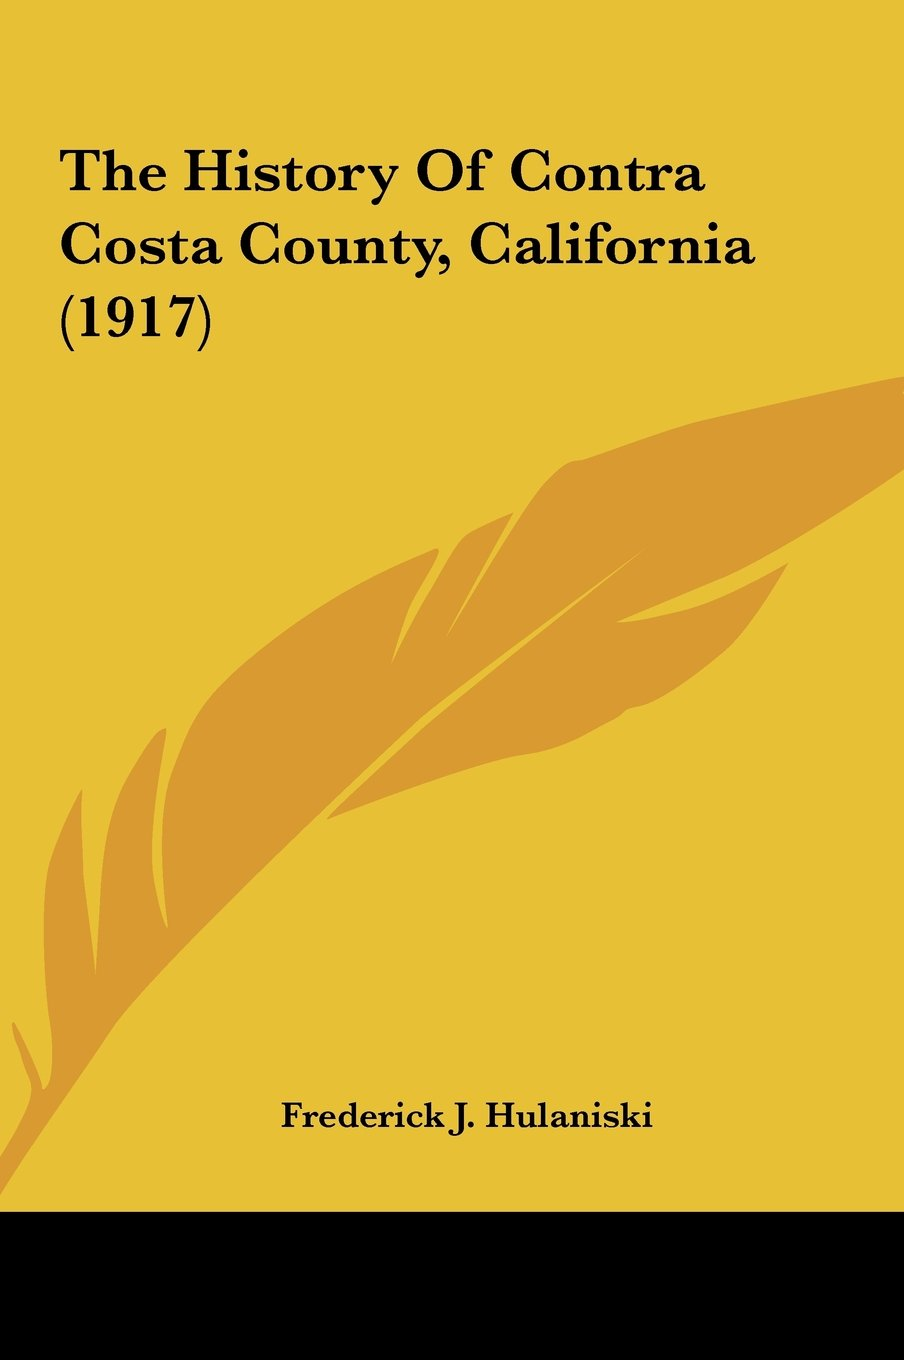 Download The History Of Contra Costa County, California (1917) pdf